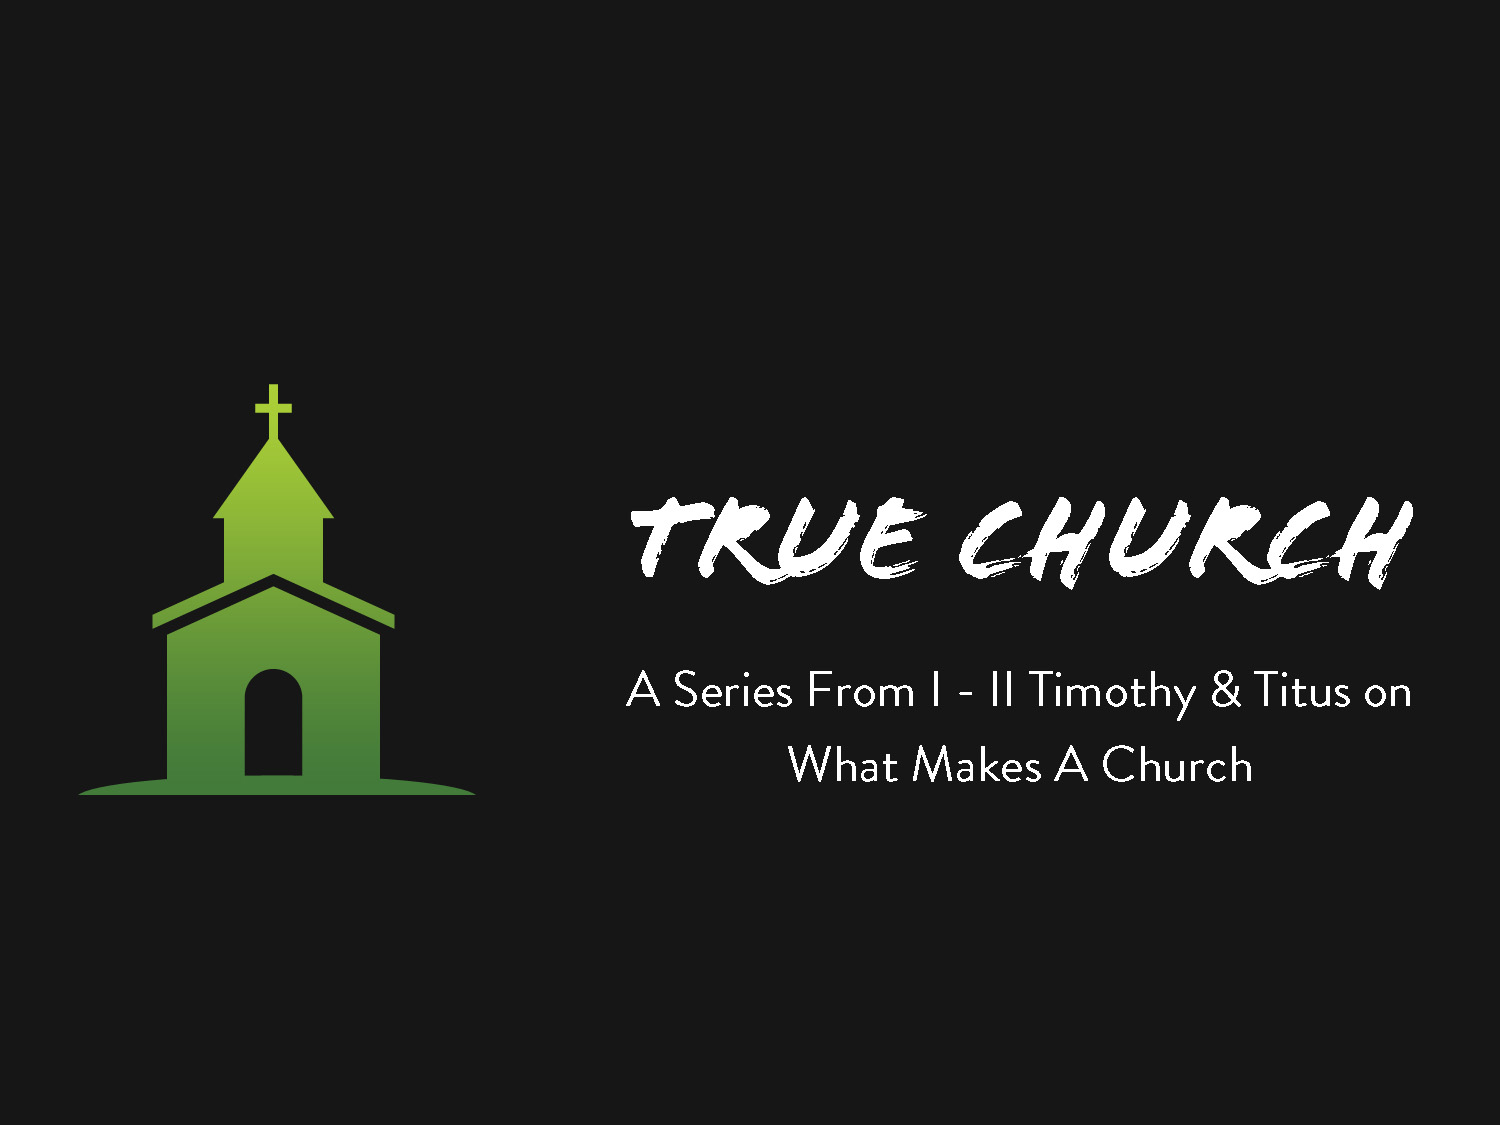 1 Timothy 1 What is a True Church & Why is it Important?